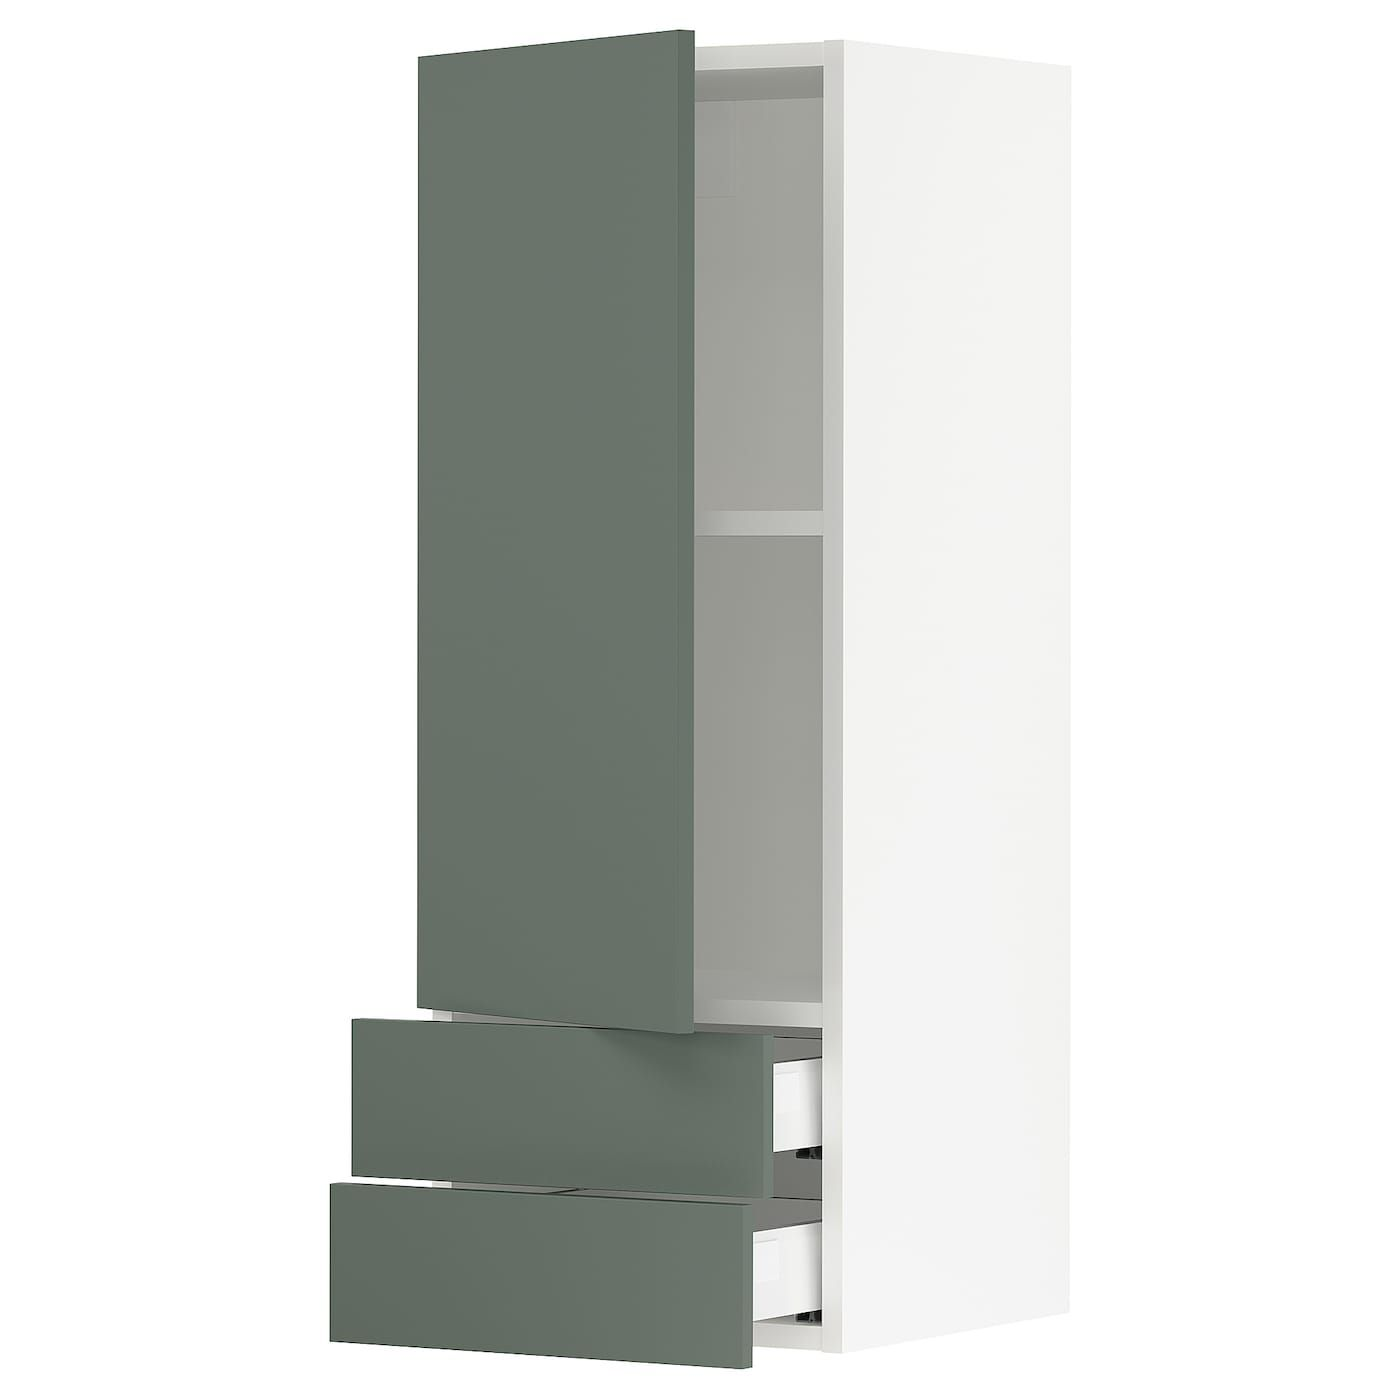 Sektion Maximera Wall Cabinet With Door 2 Drawers White Bodarp Gray Green 15x15x40 In 2020 Cabinet Doors Cabinet Tall Cabinet Storage